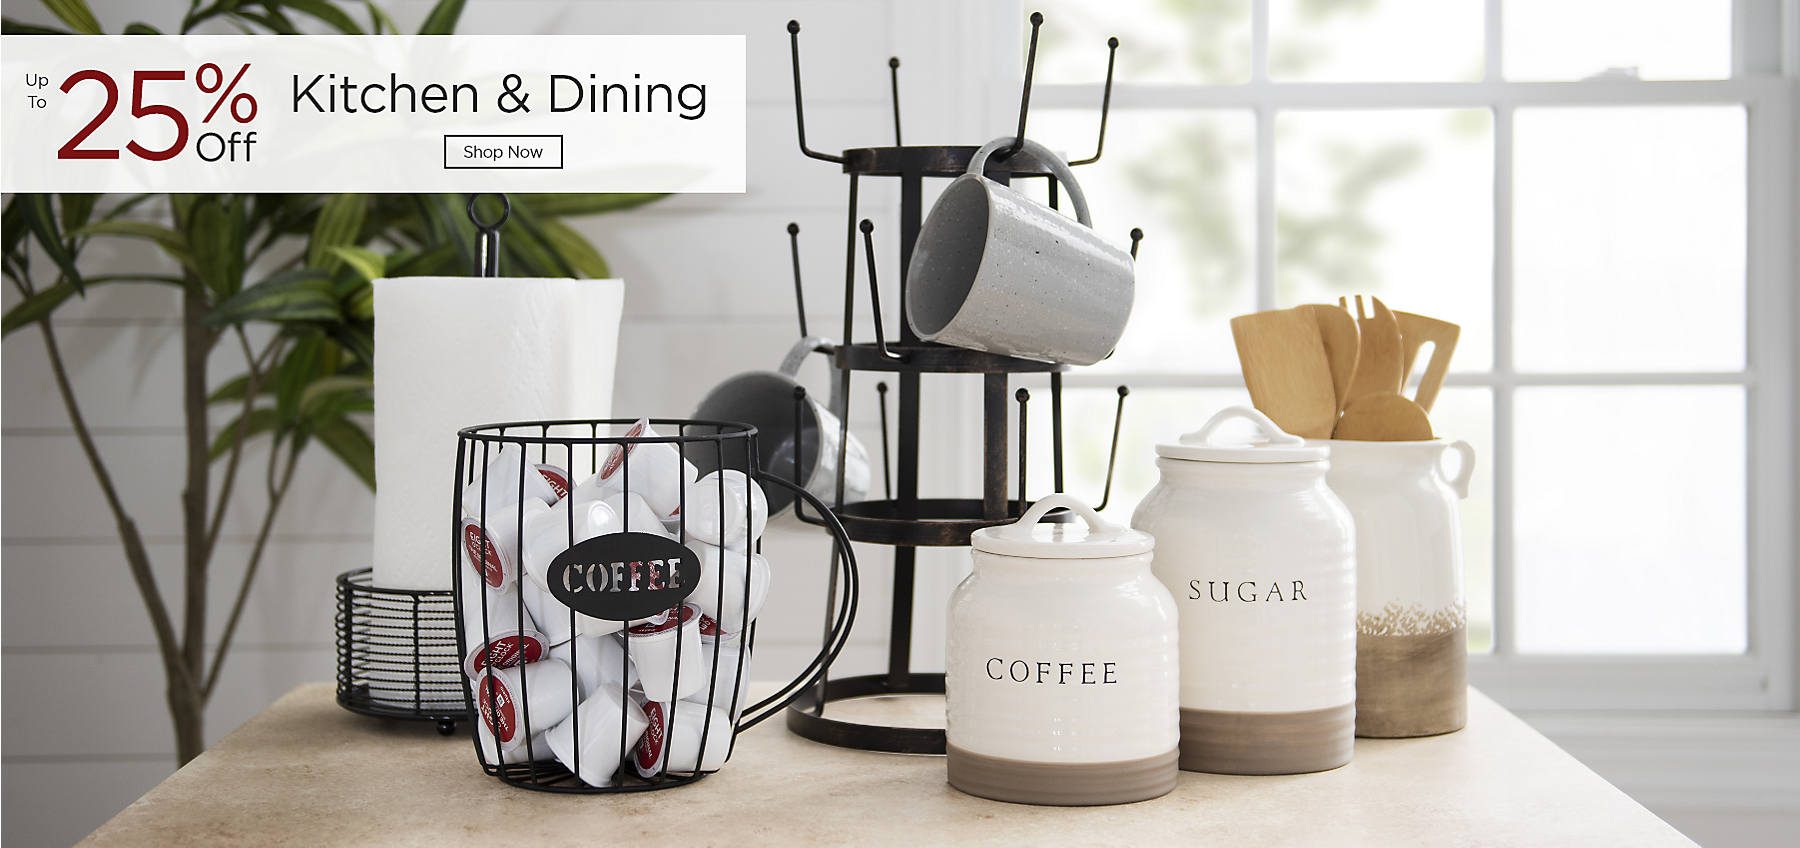 Kitchen & Dining Up to 25% Off Shop Now